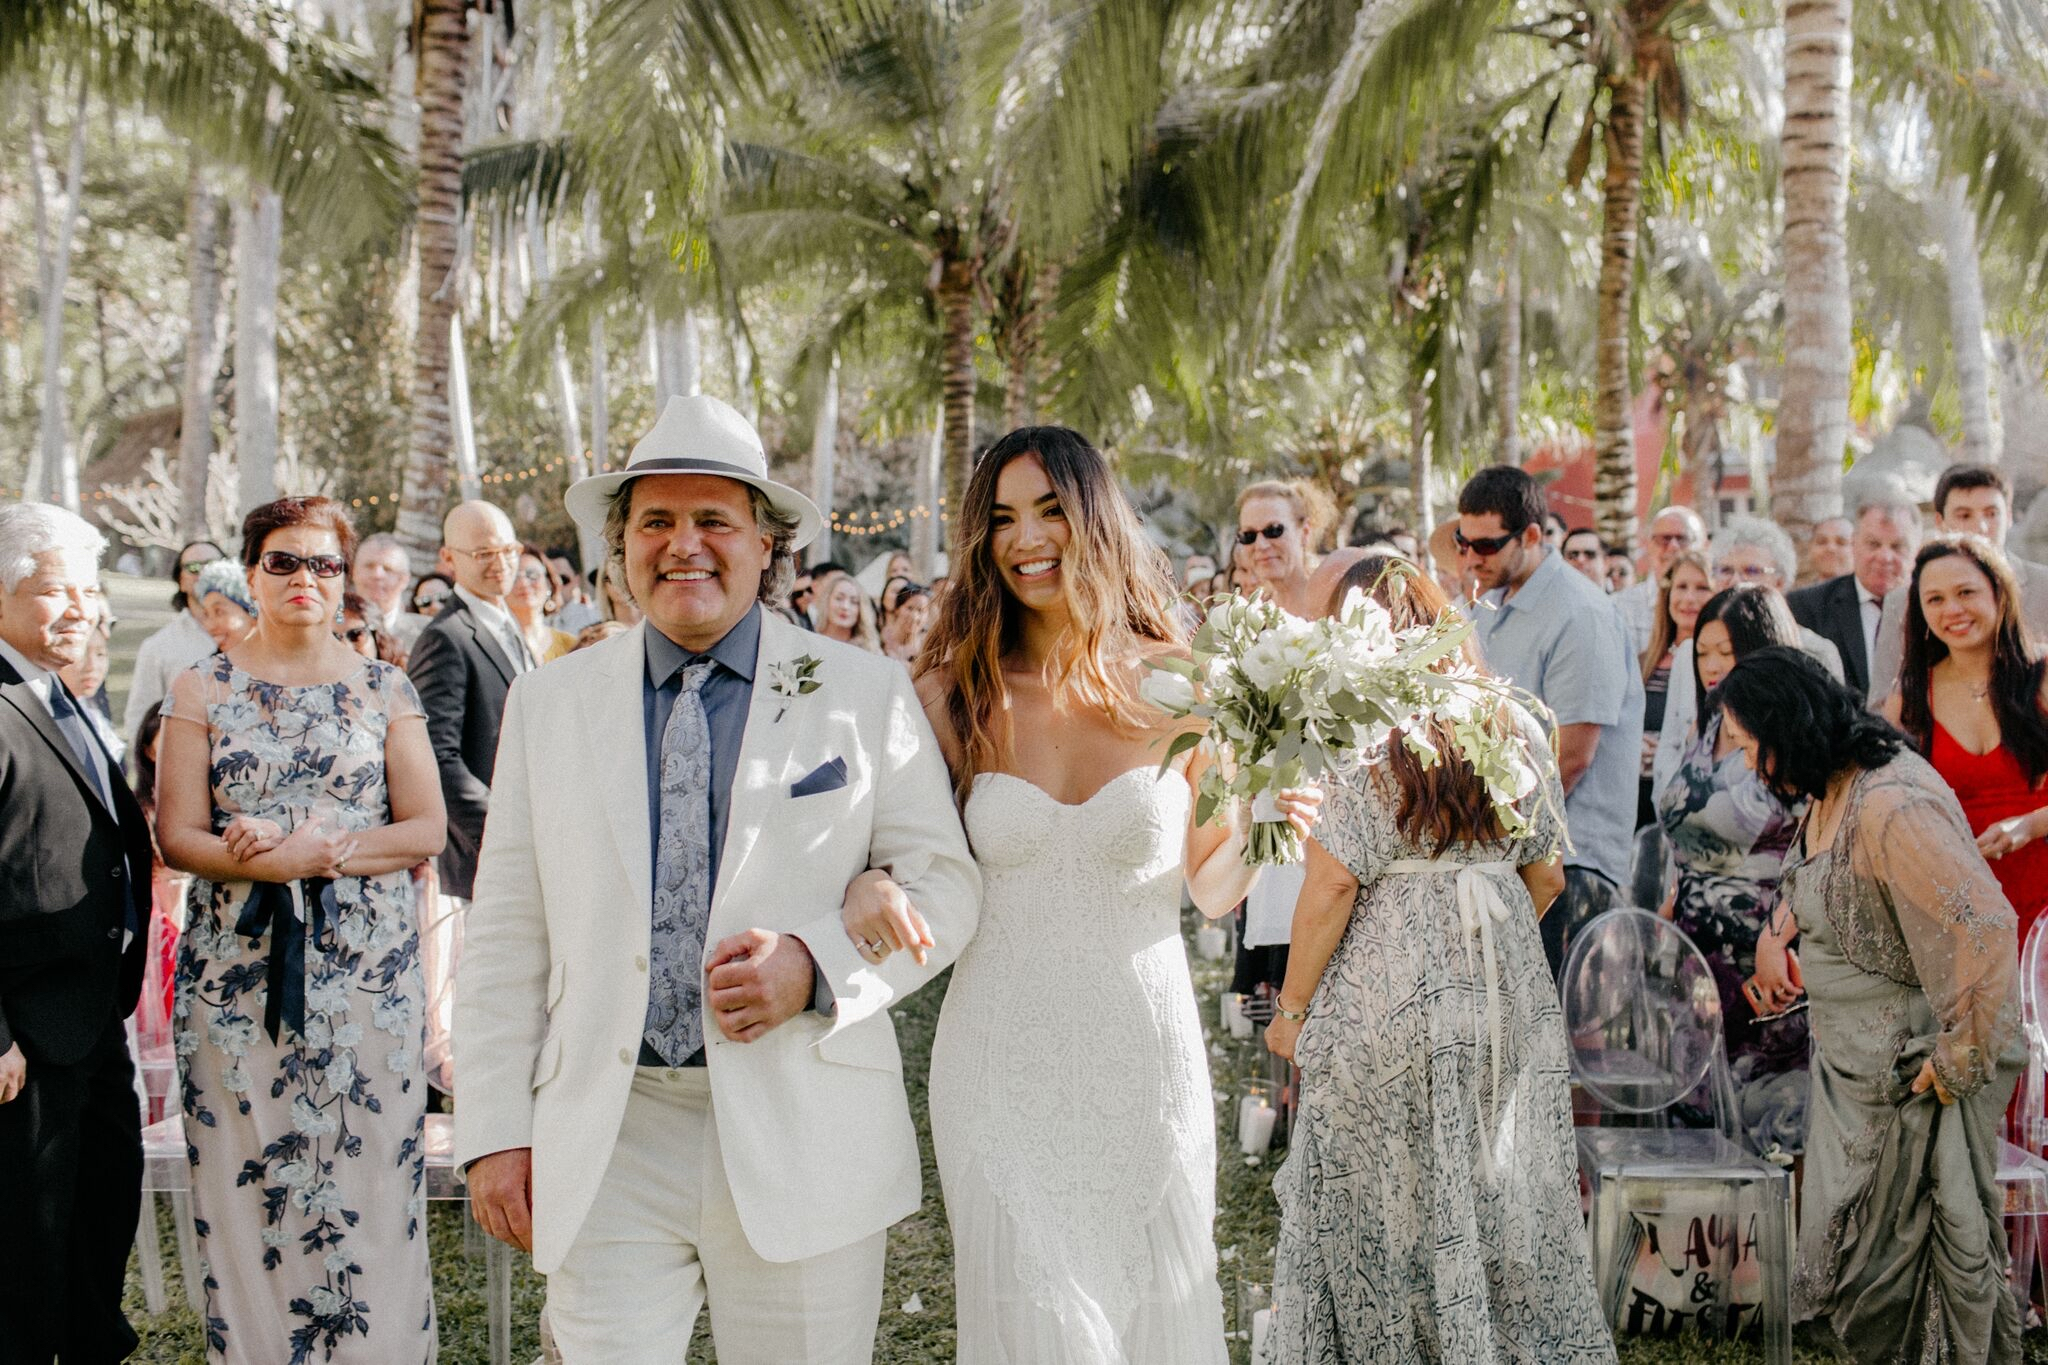 alexandra_celia_sayulita_wedding_britt_julio-1455_preview.jpg